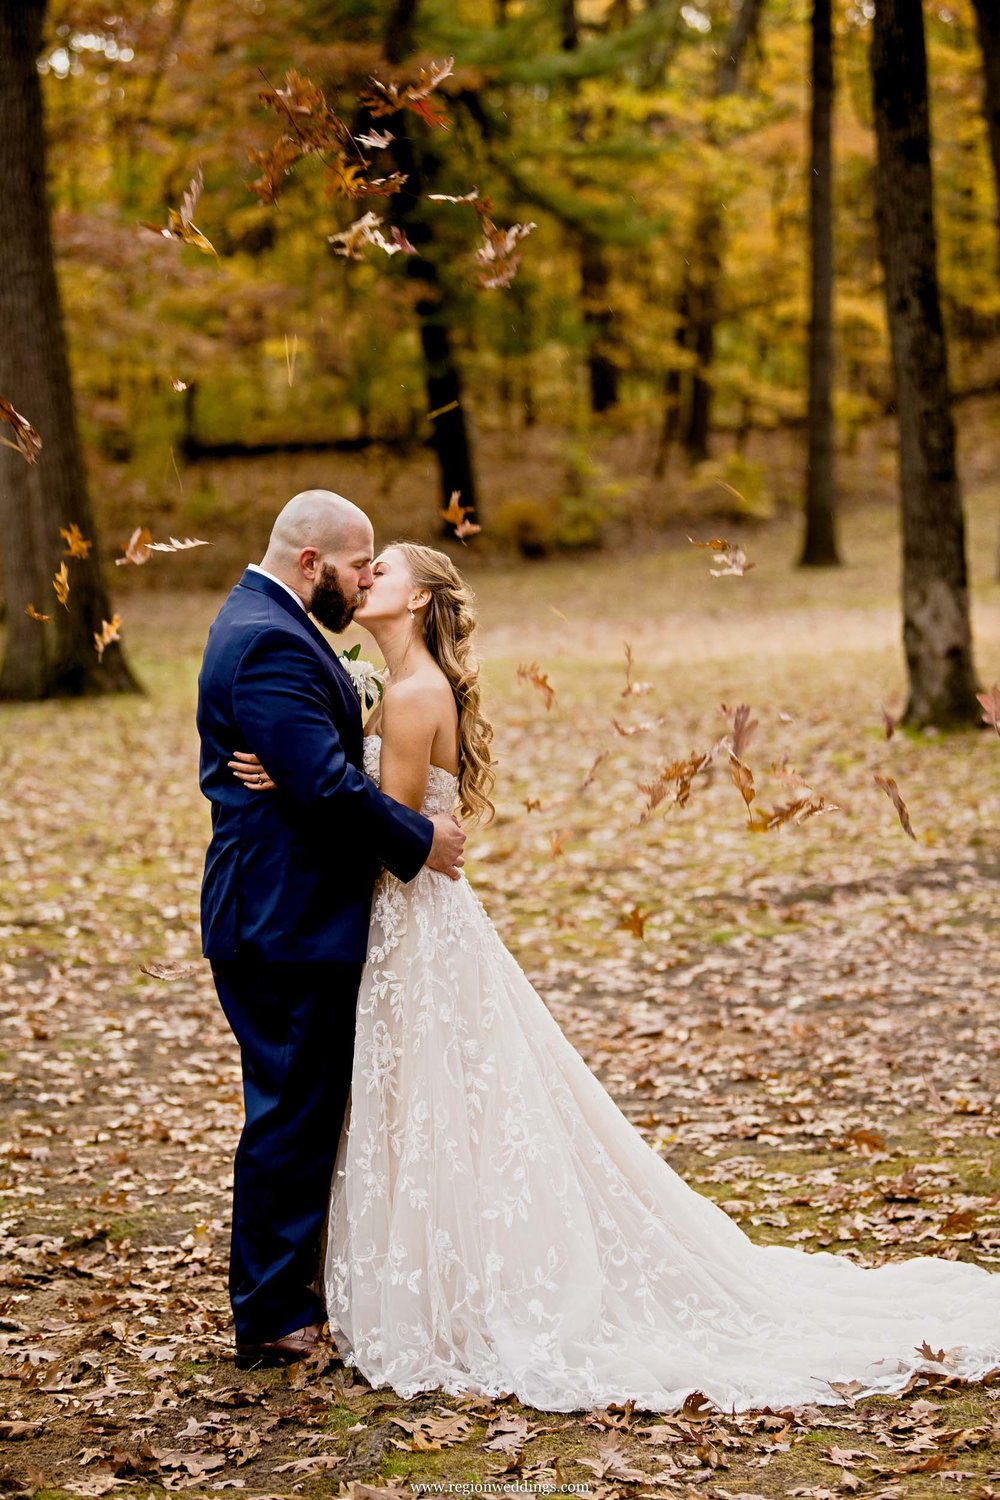 Leaves fall upon the bride and groom for their Autumn wedding.